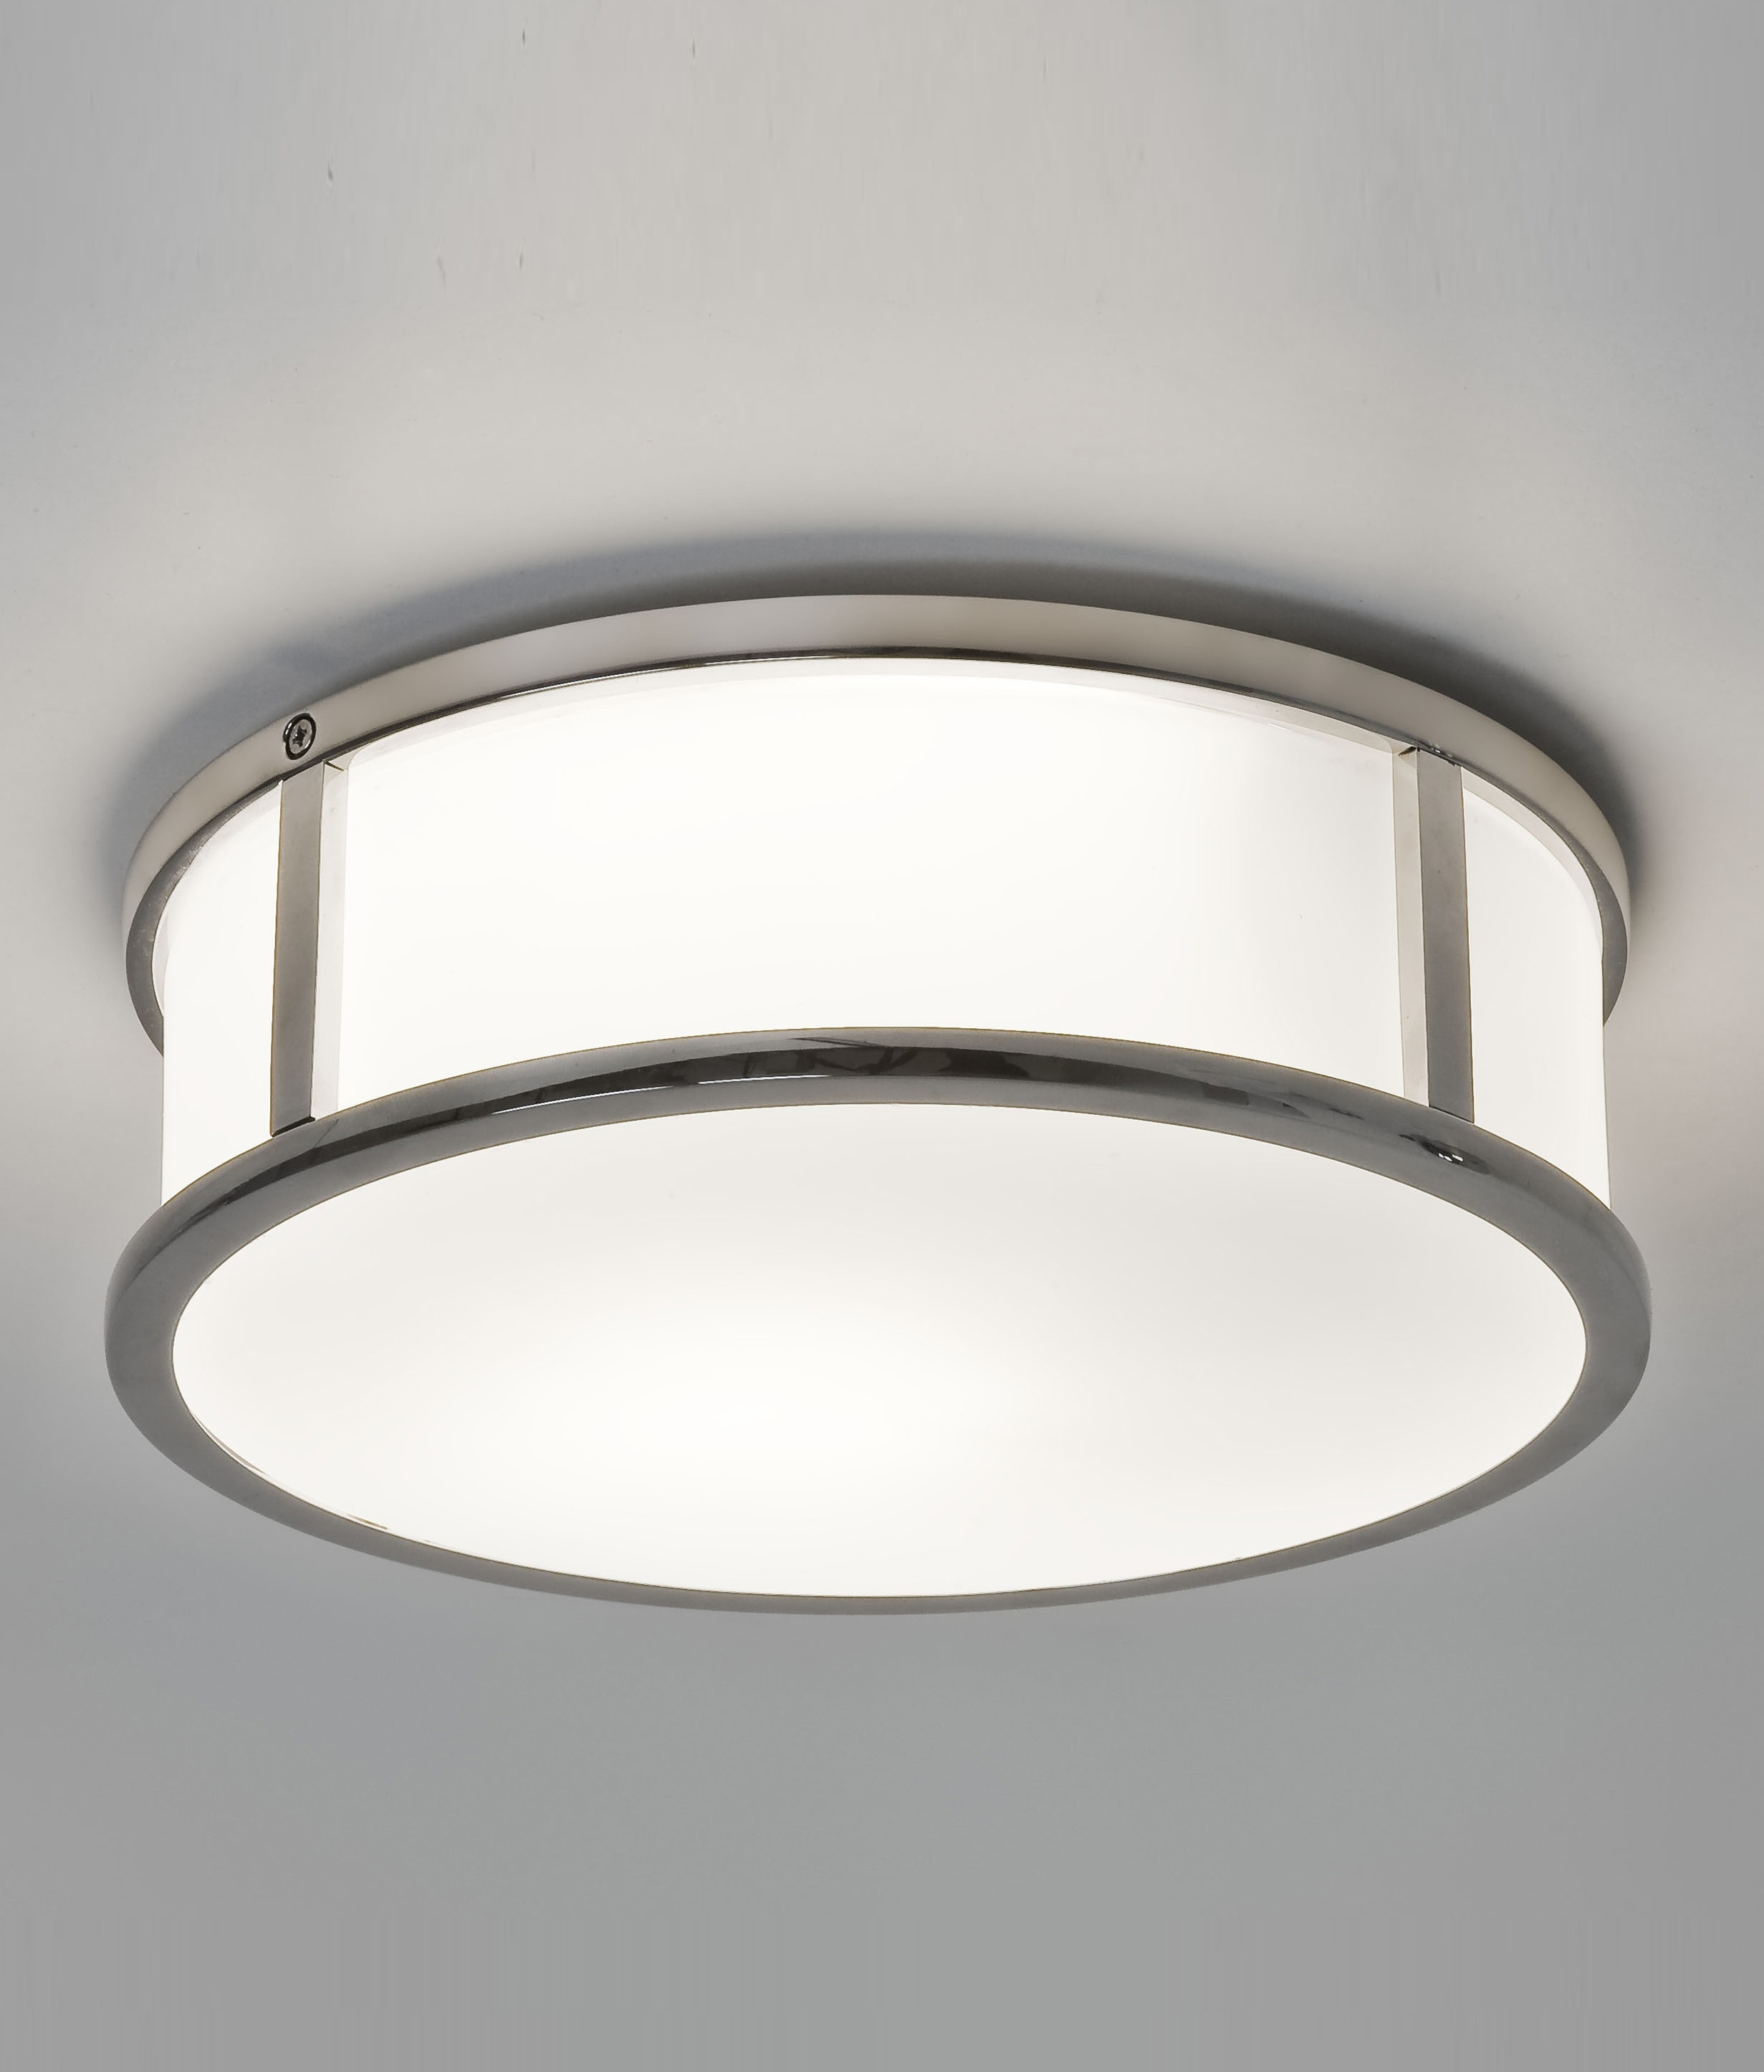 Flush Bathroom Ceiling Light With Chrome Finish Amp Opal Glass